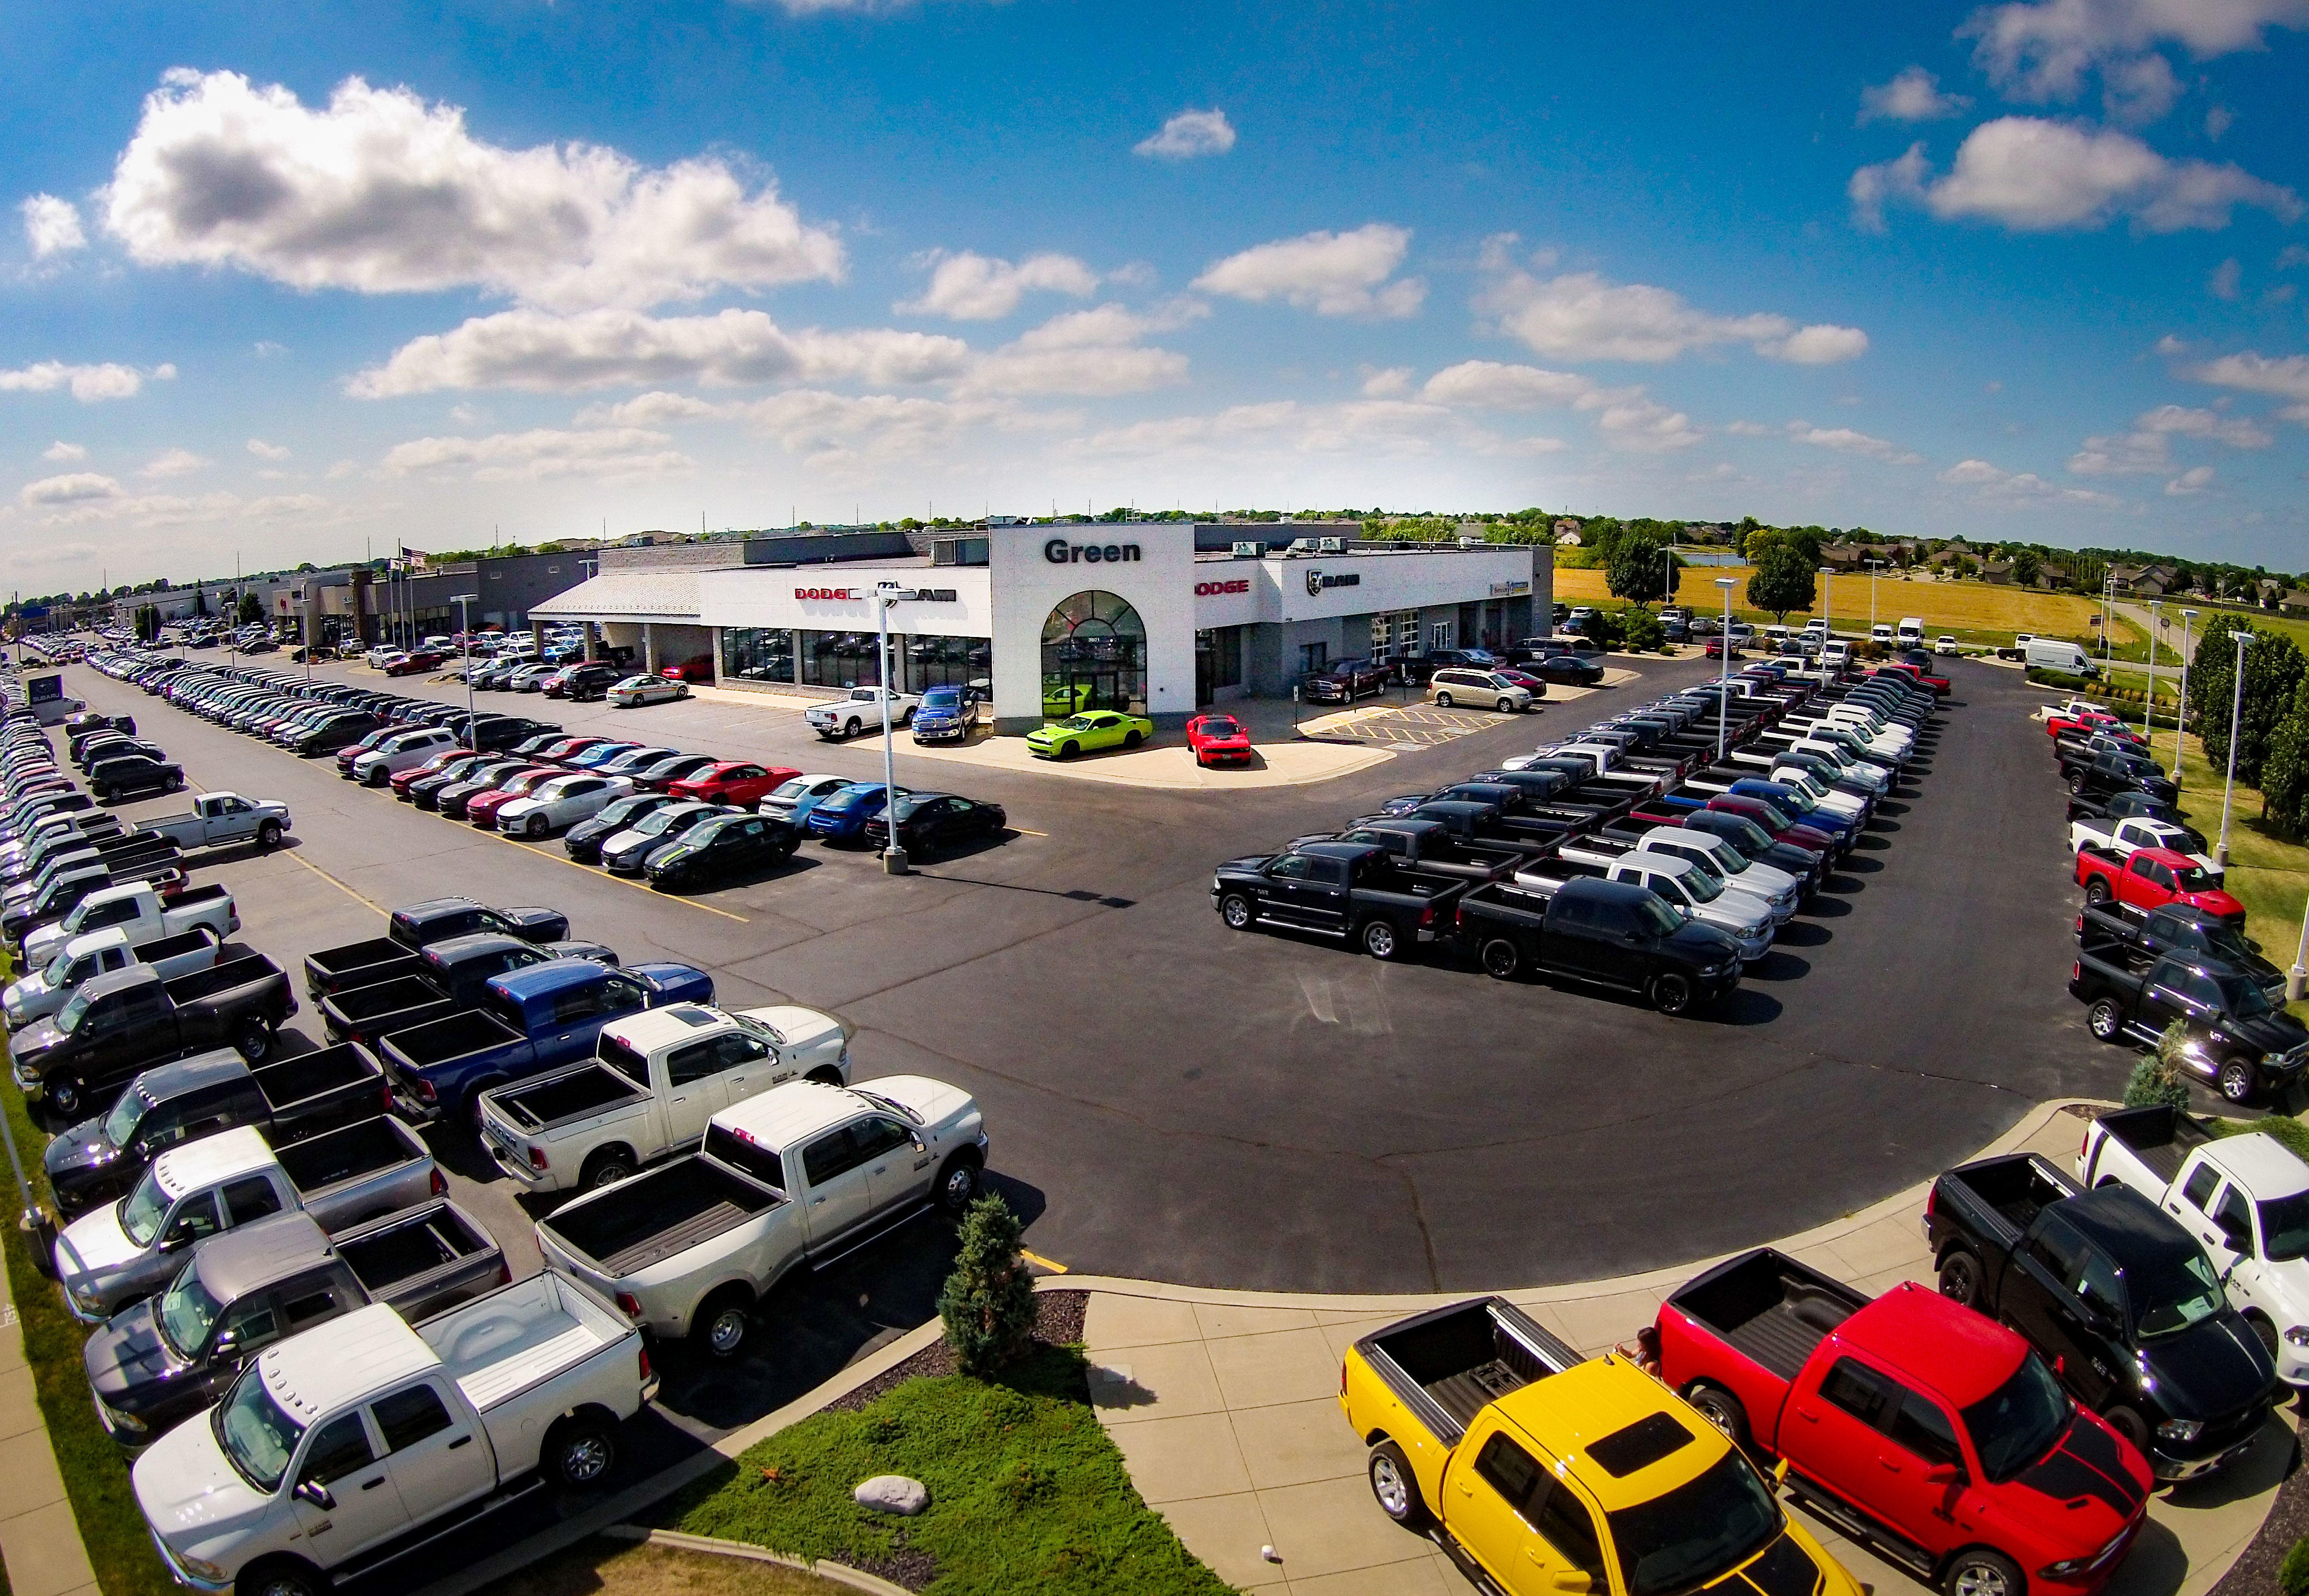 Springfield Rental Cars Airport